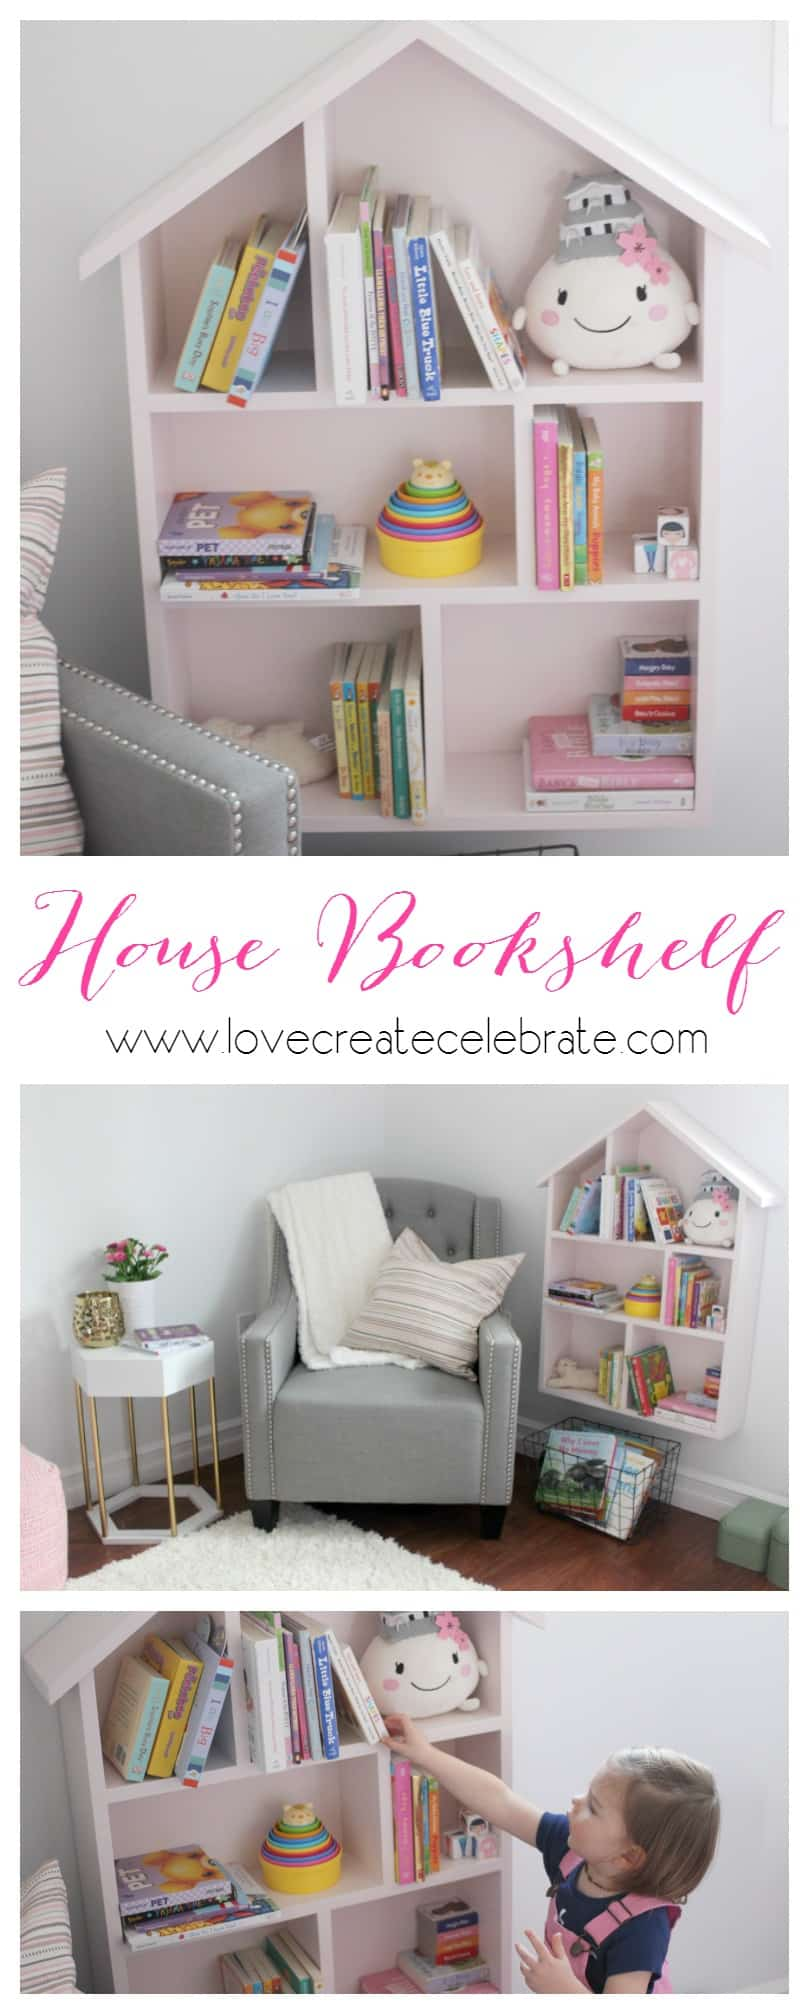 organizer bedroom shelf itm space pink wood small bookcase cube furniture storage